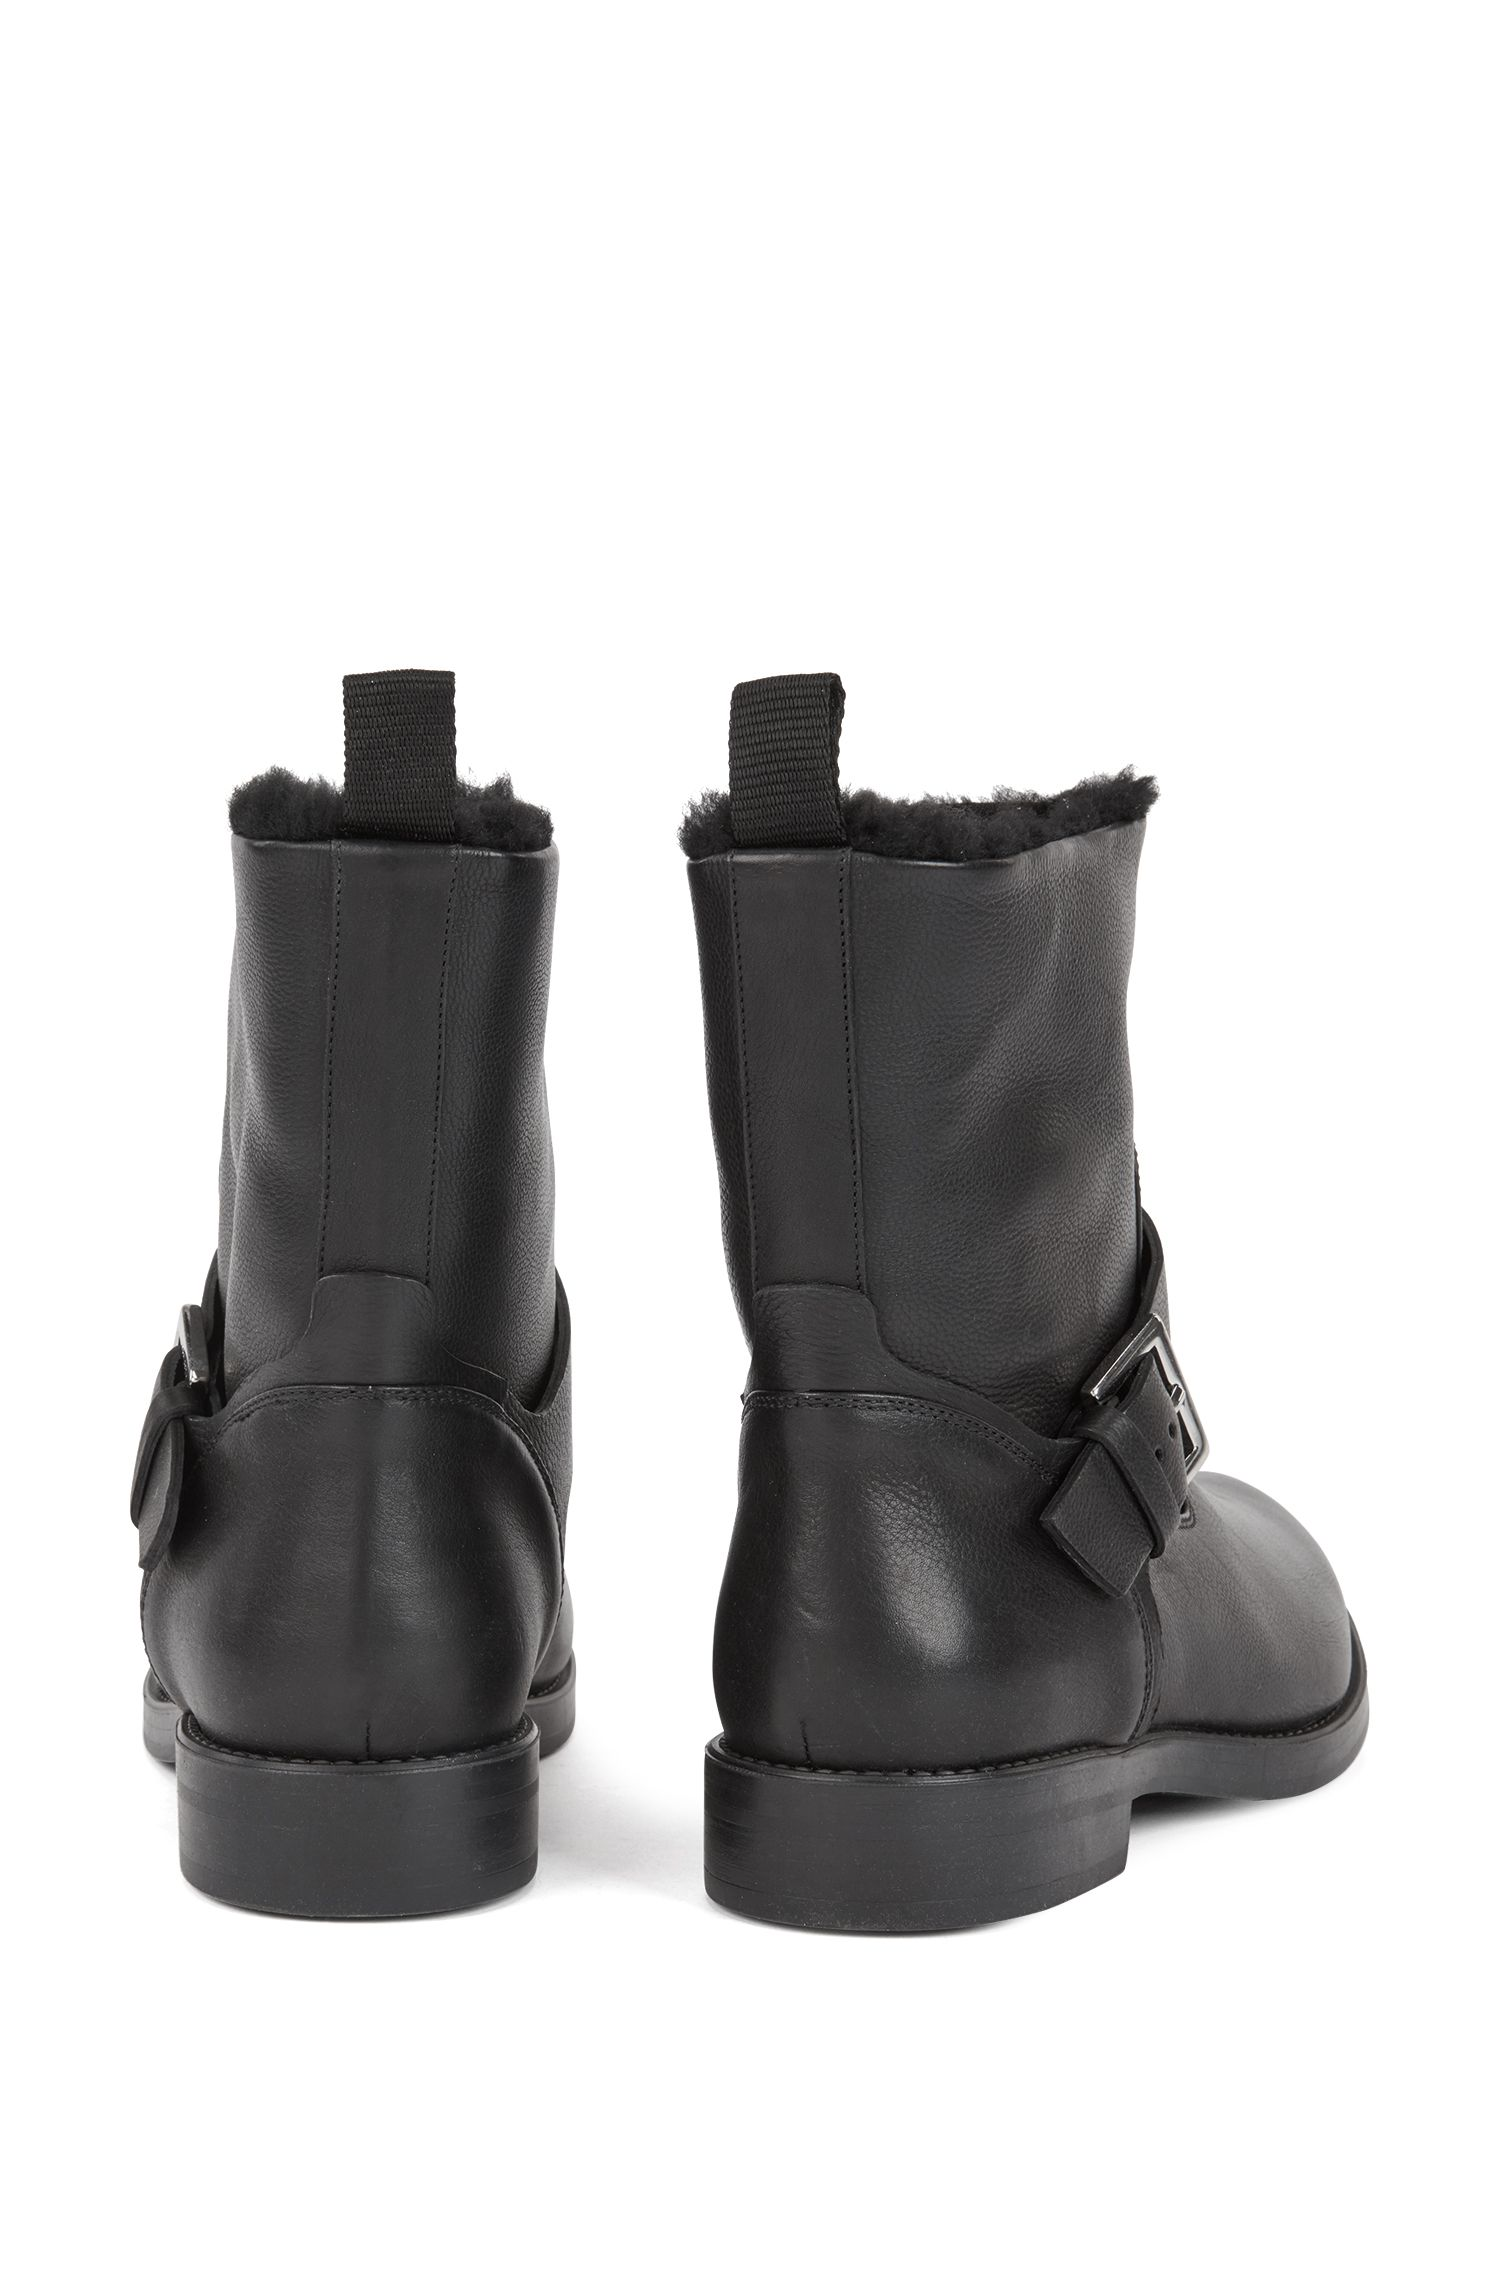 Sheepskin-lined biker boots in grained calf leather, Black